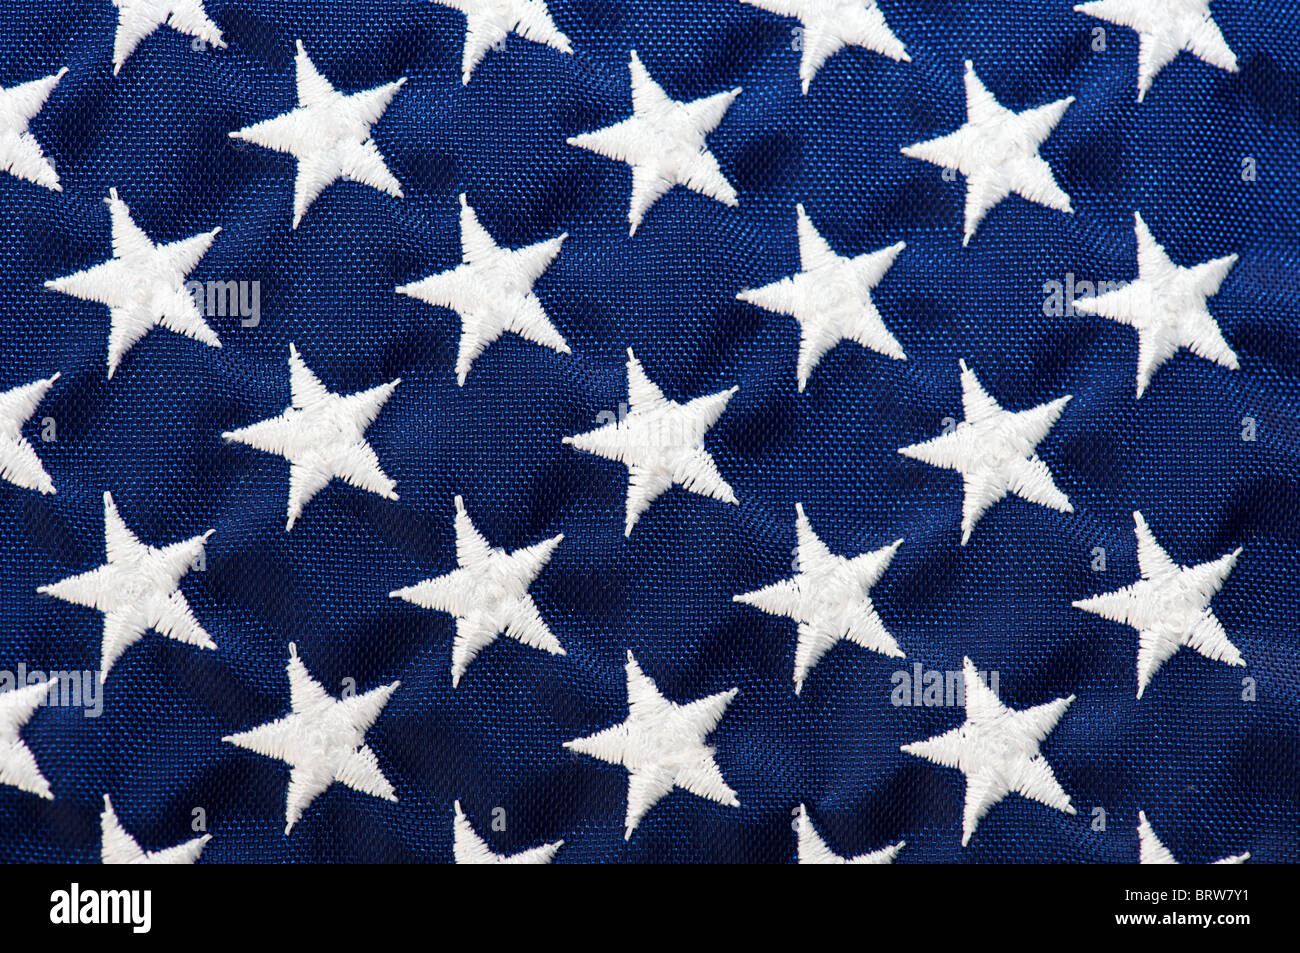 Star field of an American Flag, white stars on blue background - Stock Image